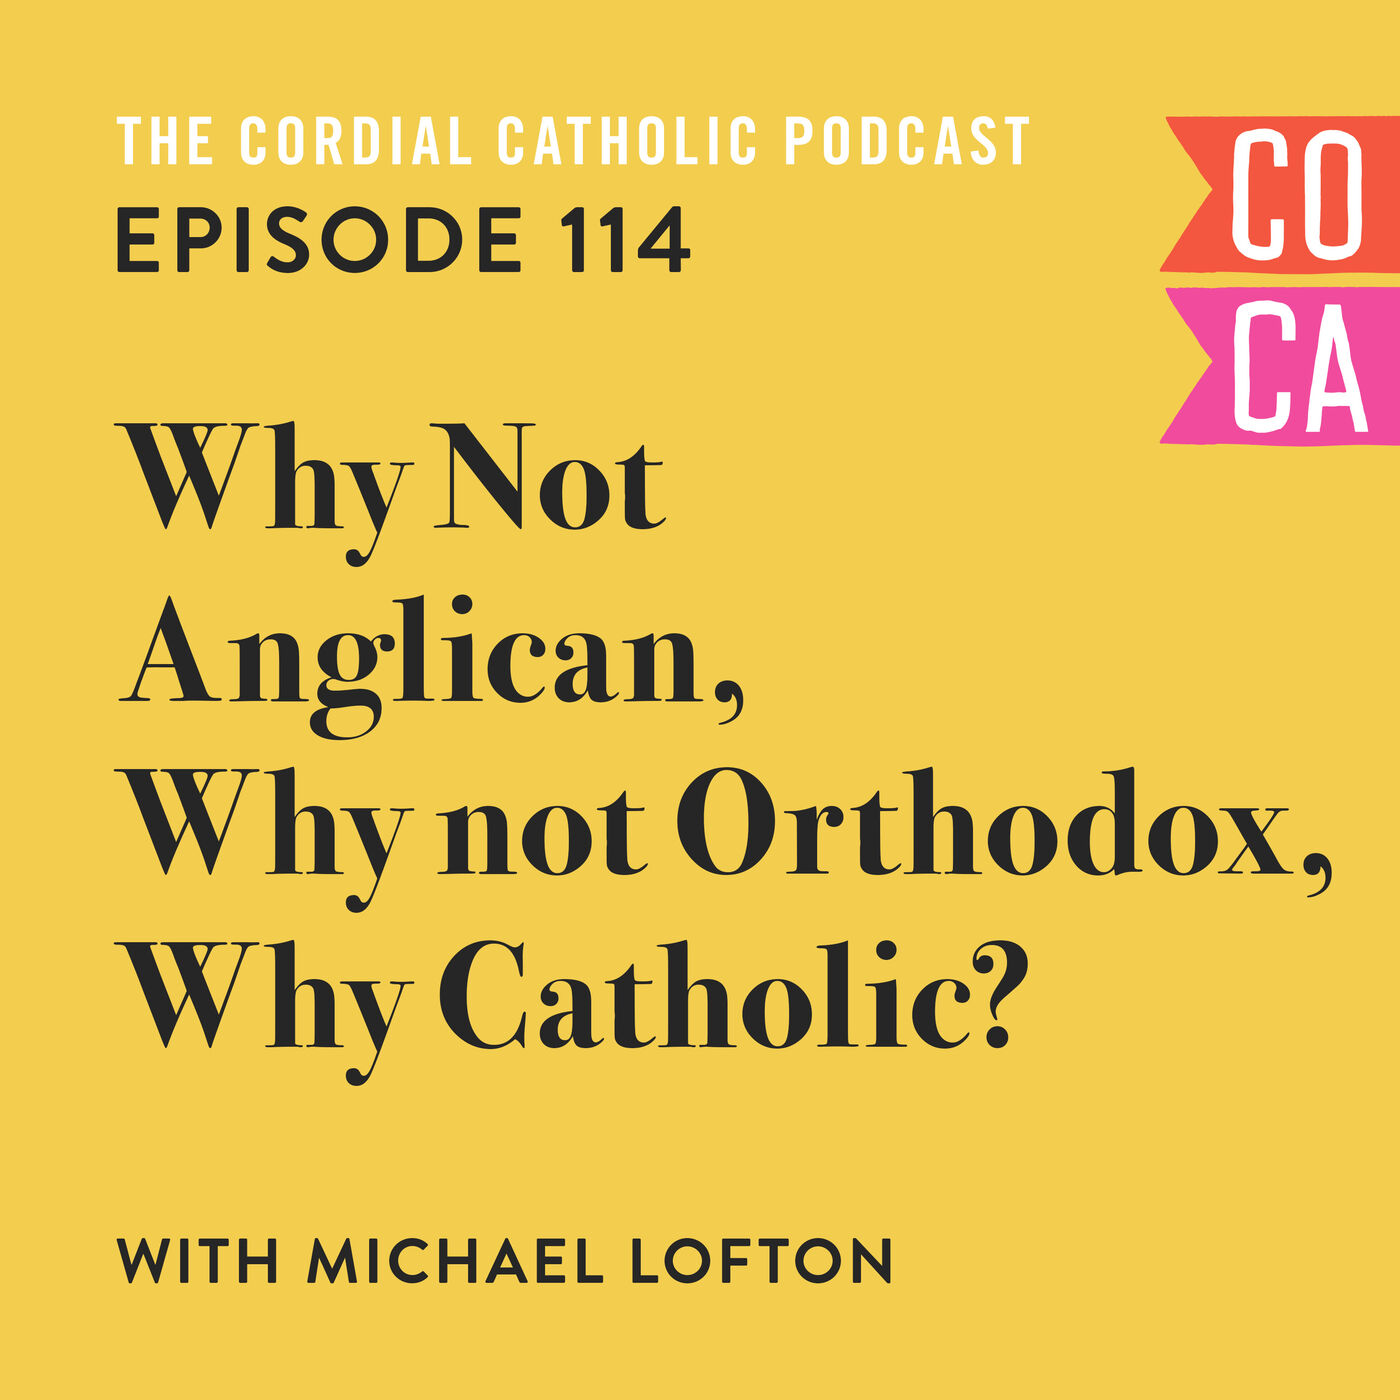 114: Why Not Anglican, Why Not Orthodox, Why Catholic? (w/ Michael Lofton)